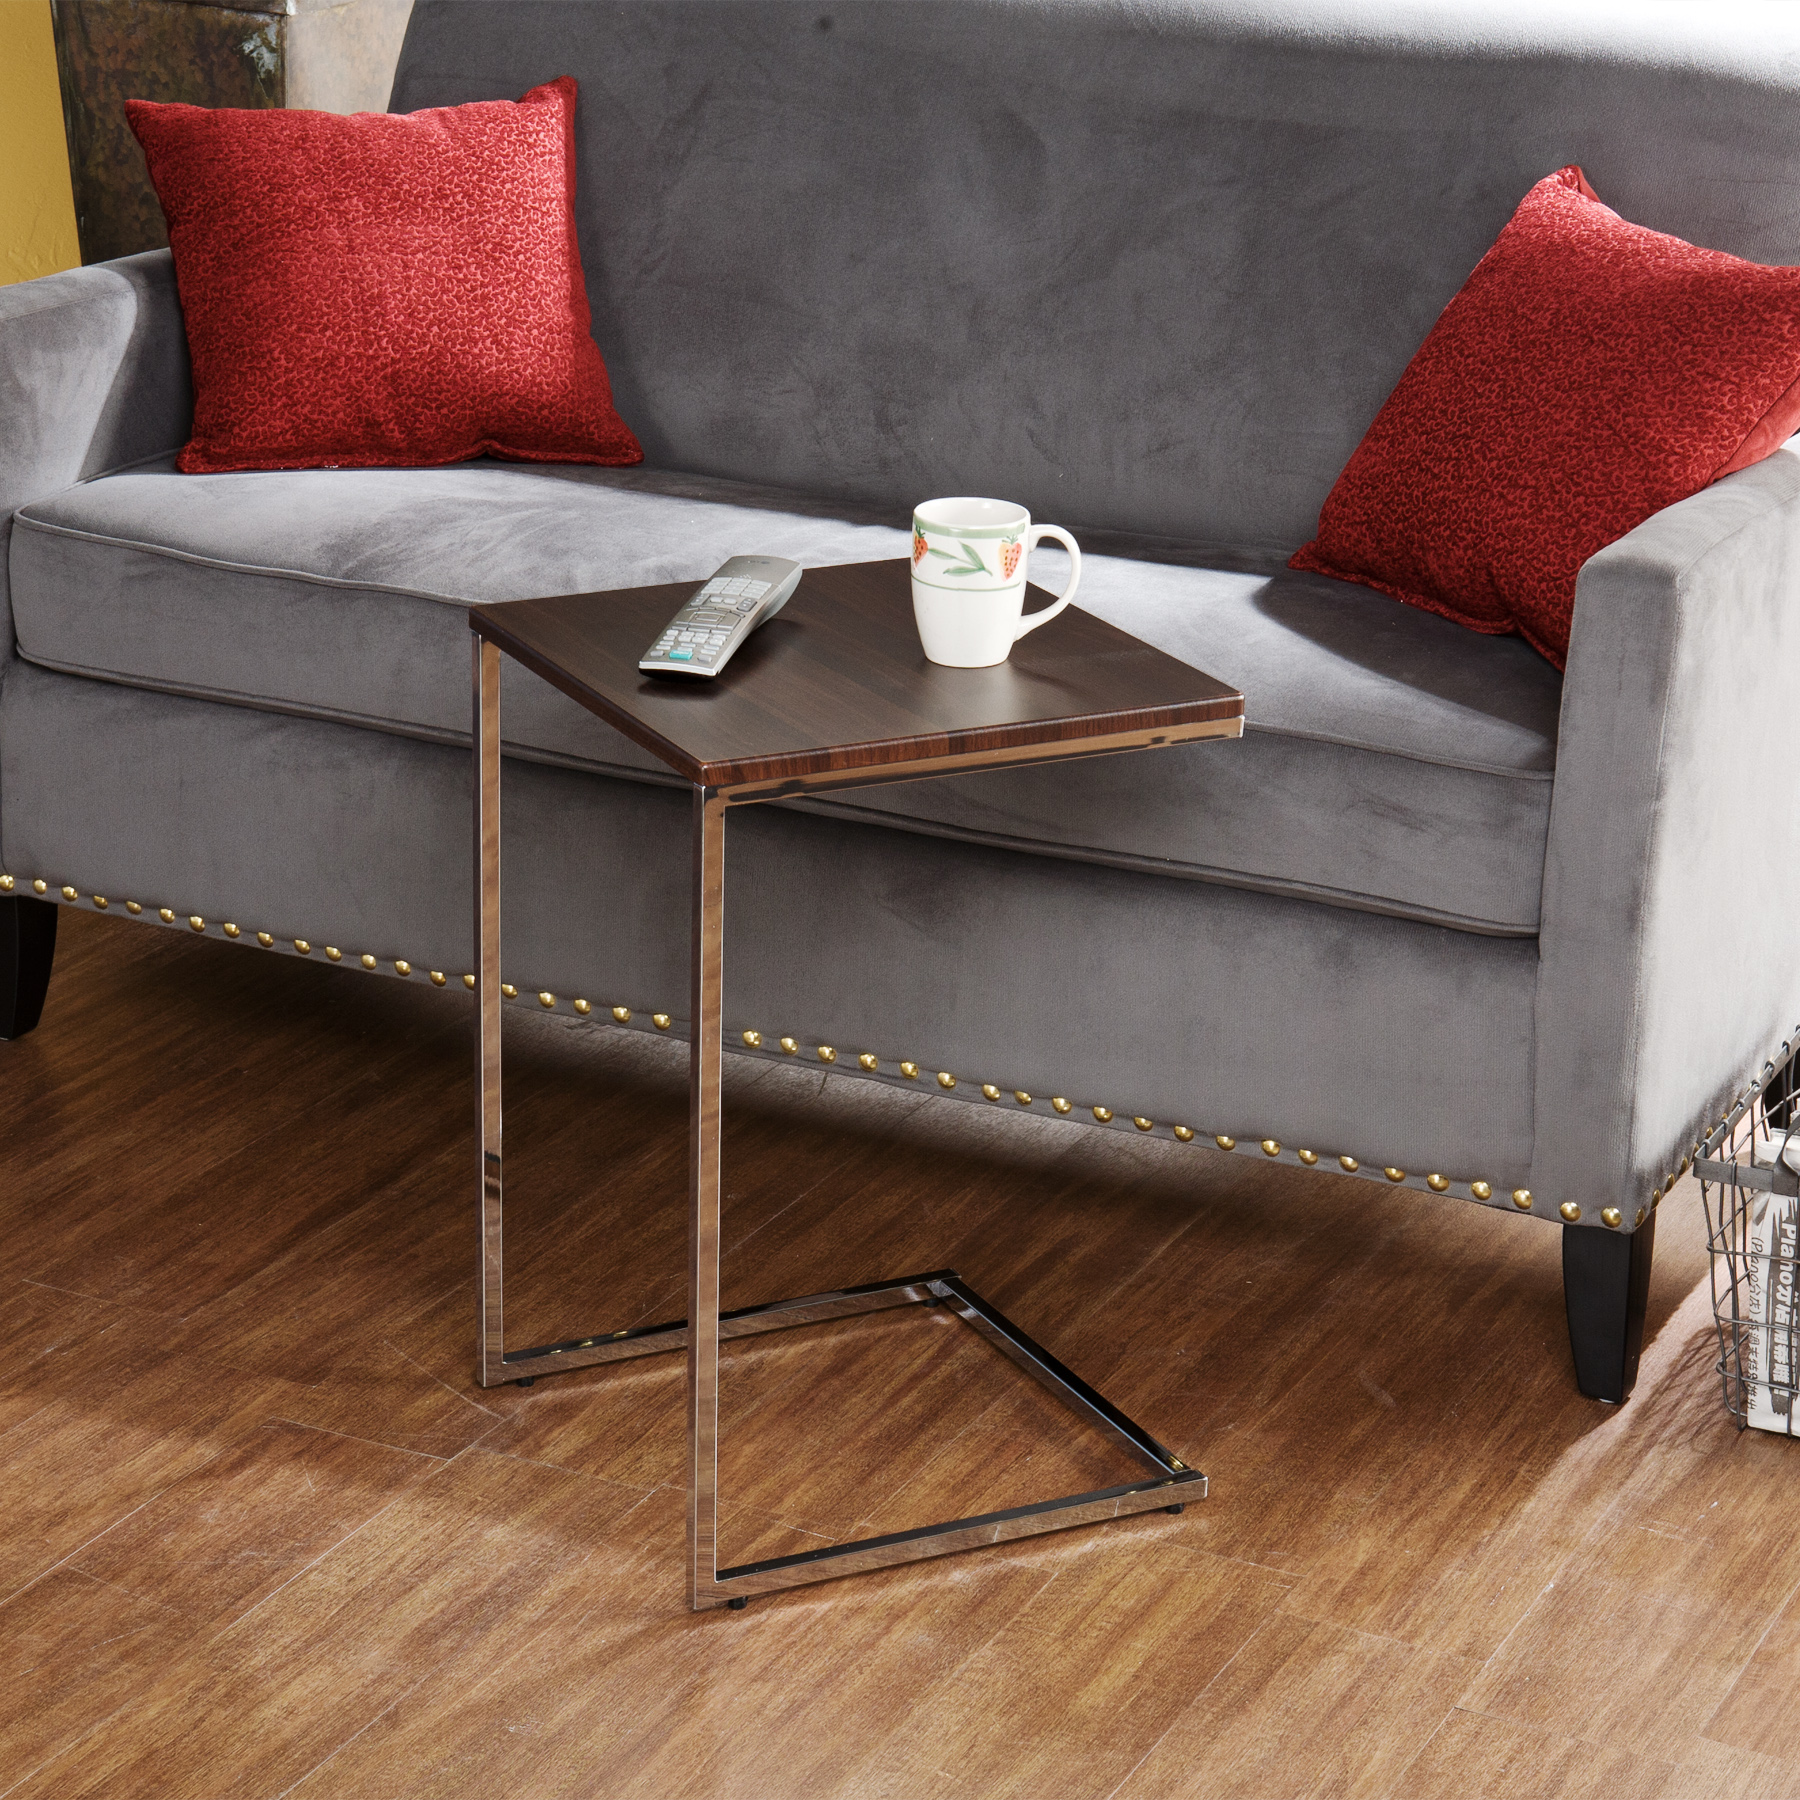 grey velvet sofas with red cushions feat metal couch desk for tray furniture inspirations tables ideas wood flooring comfy interior room decors stylish design set cozy offic